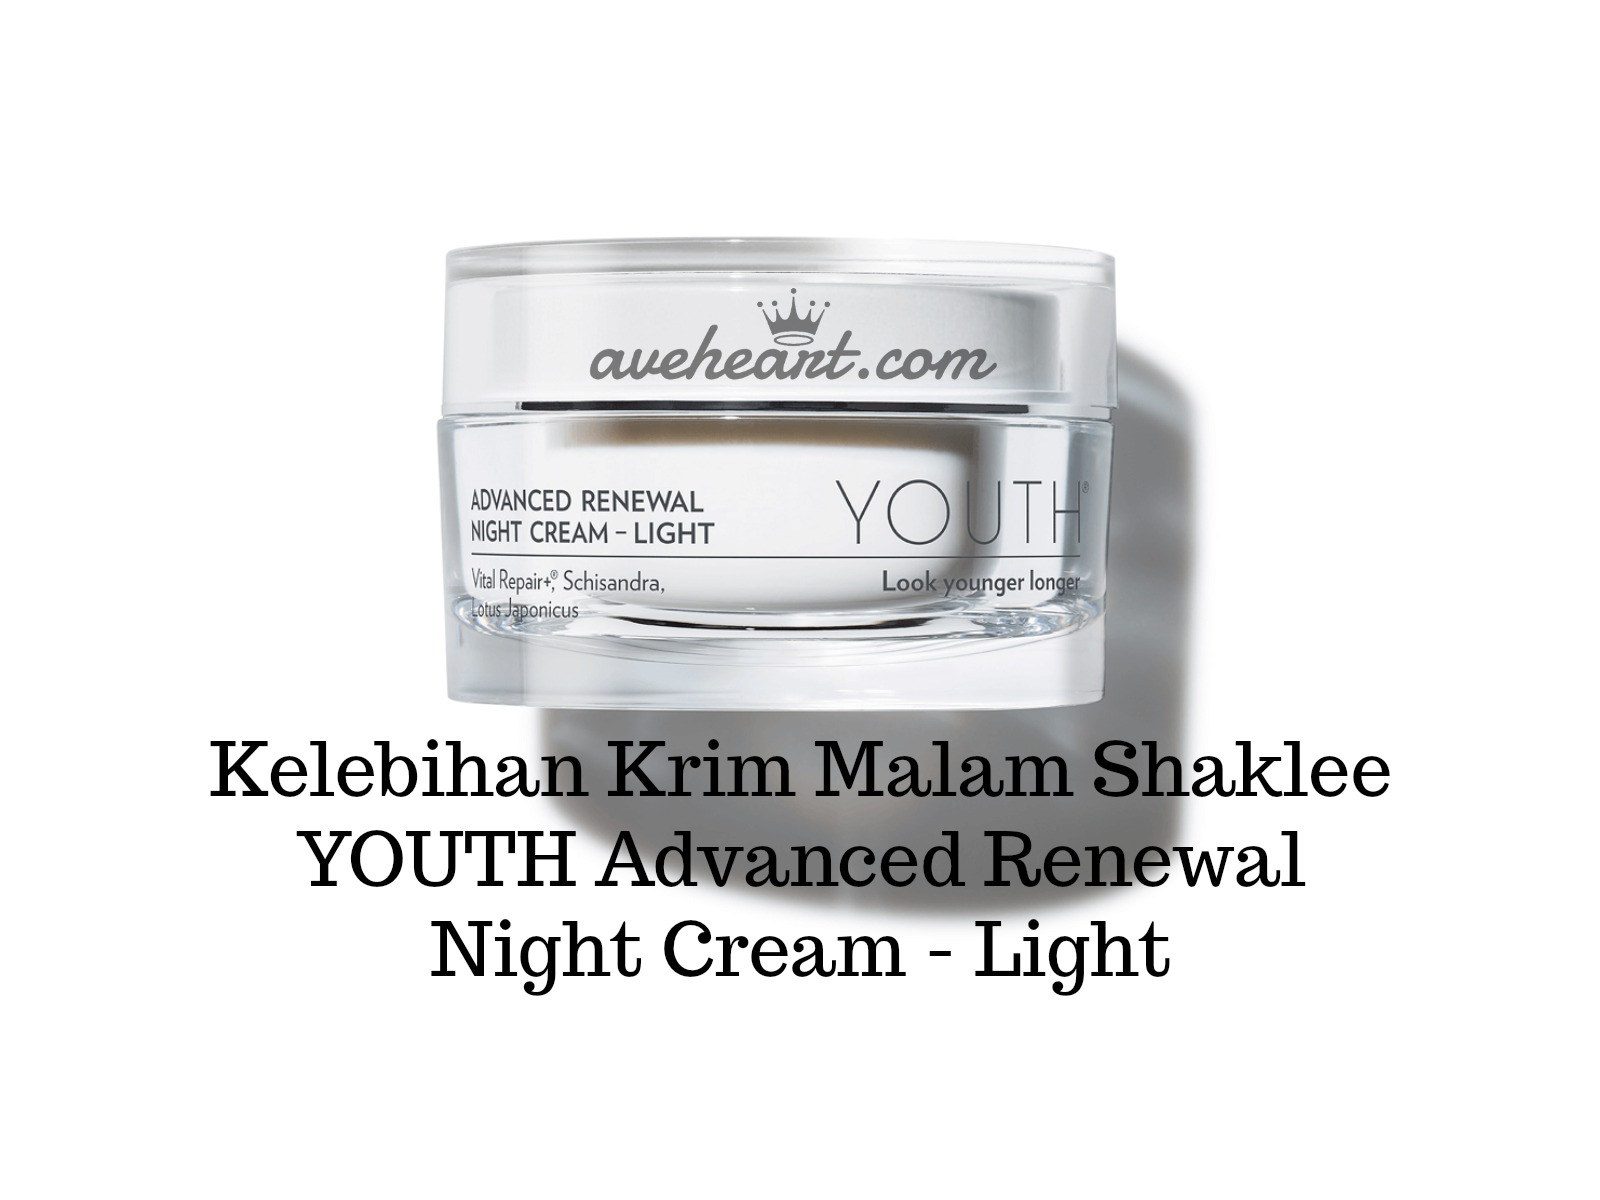 Kelebihan Krim Malam Shaklee YOUTH Advanced Renewal Night Cream - Light